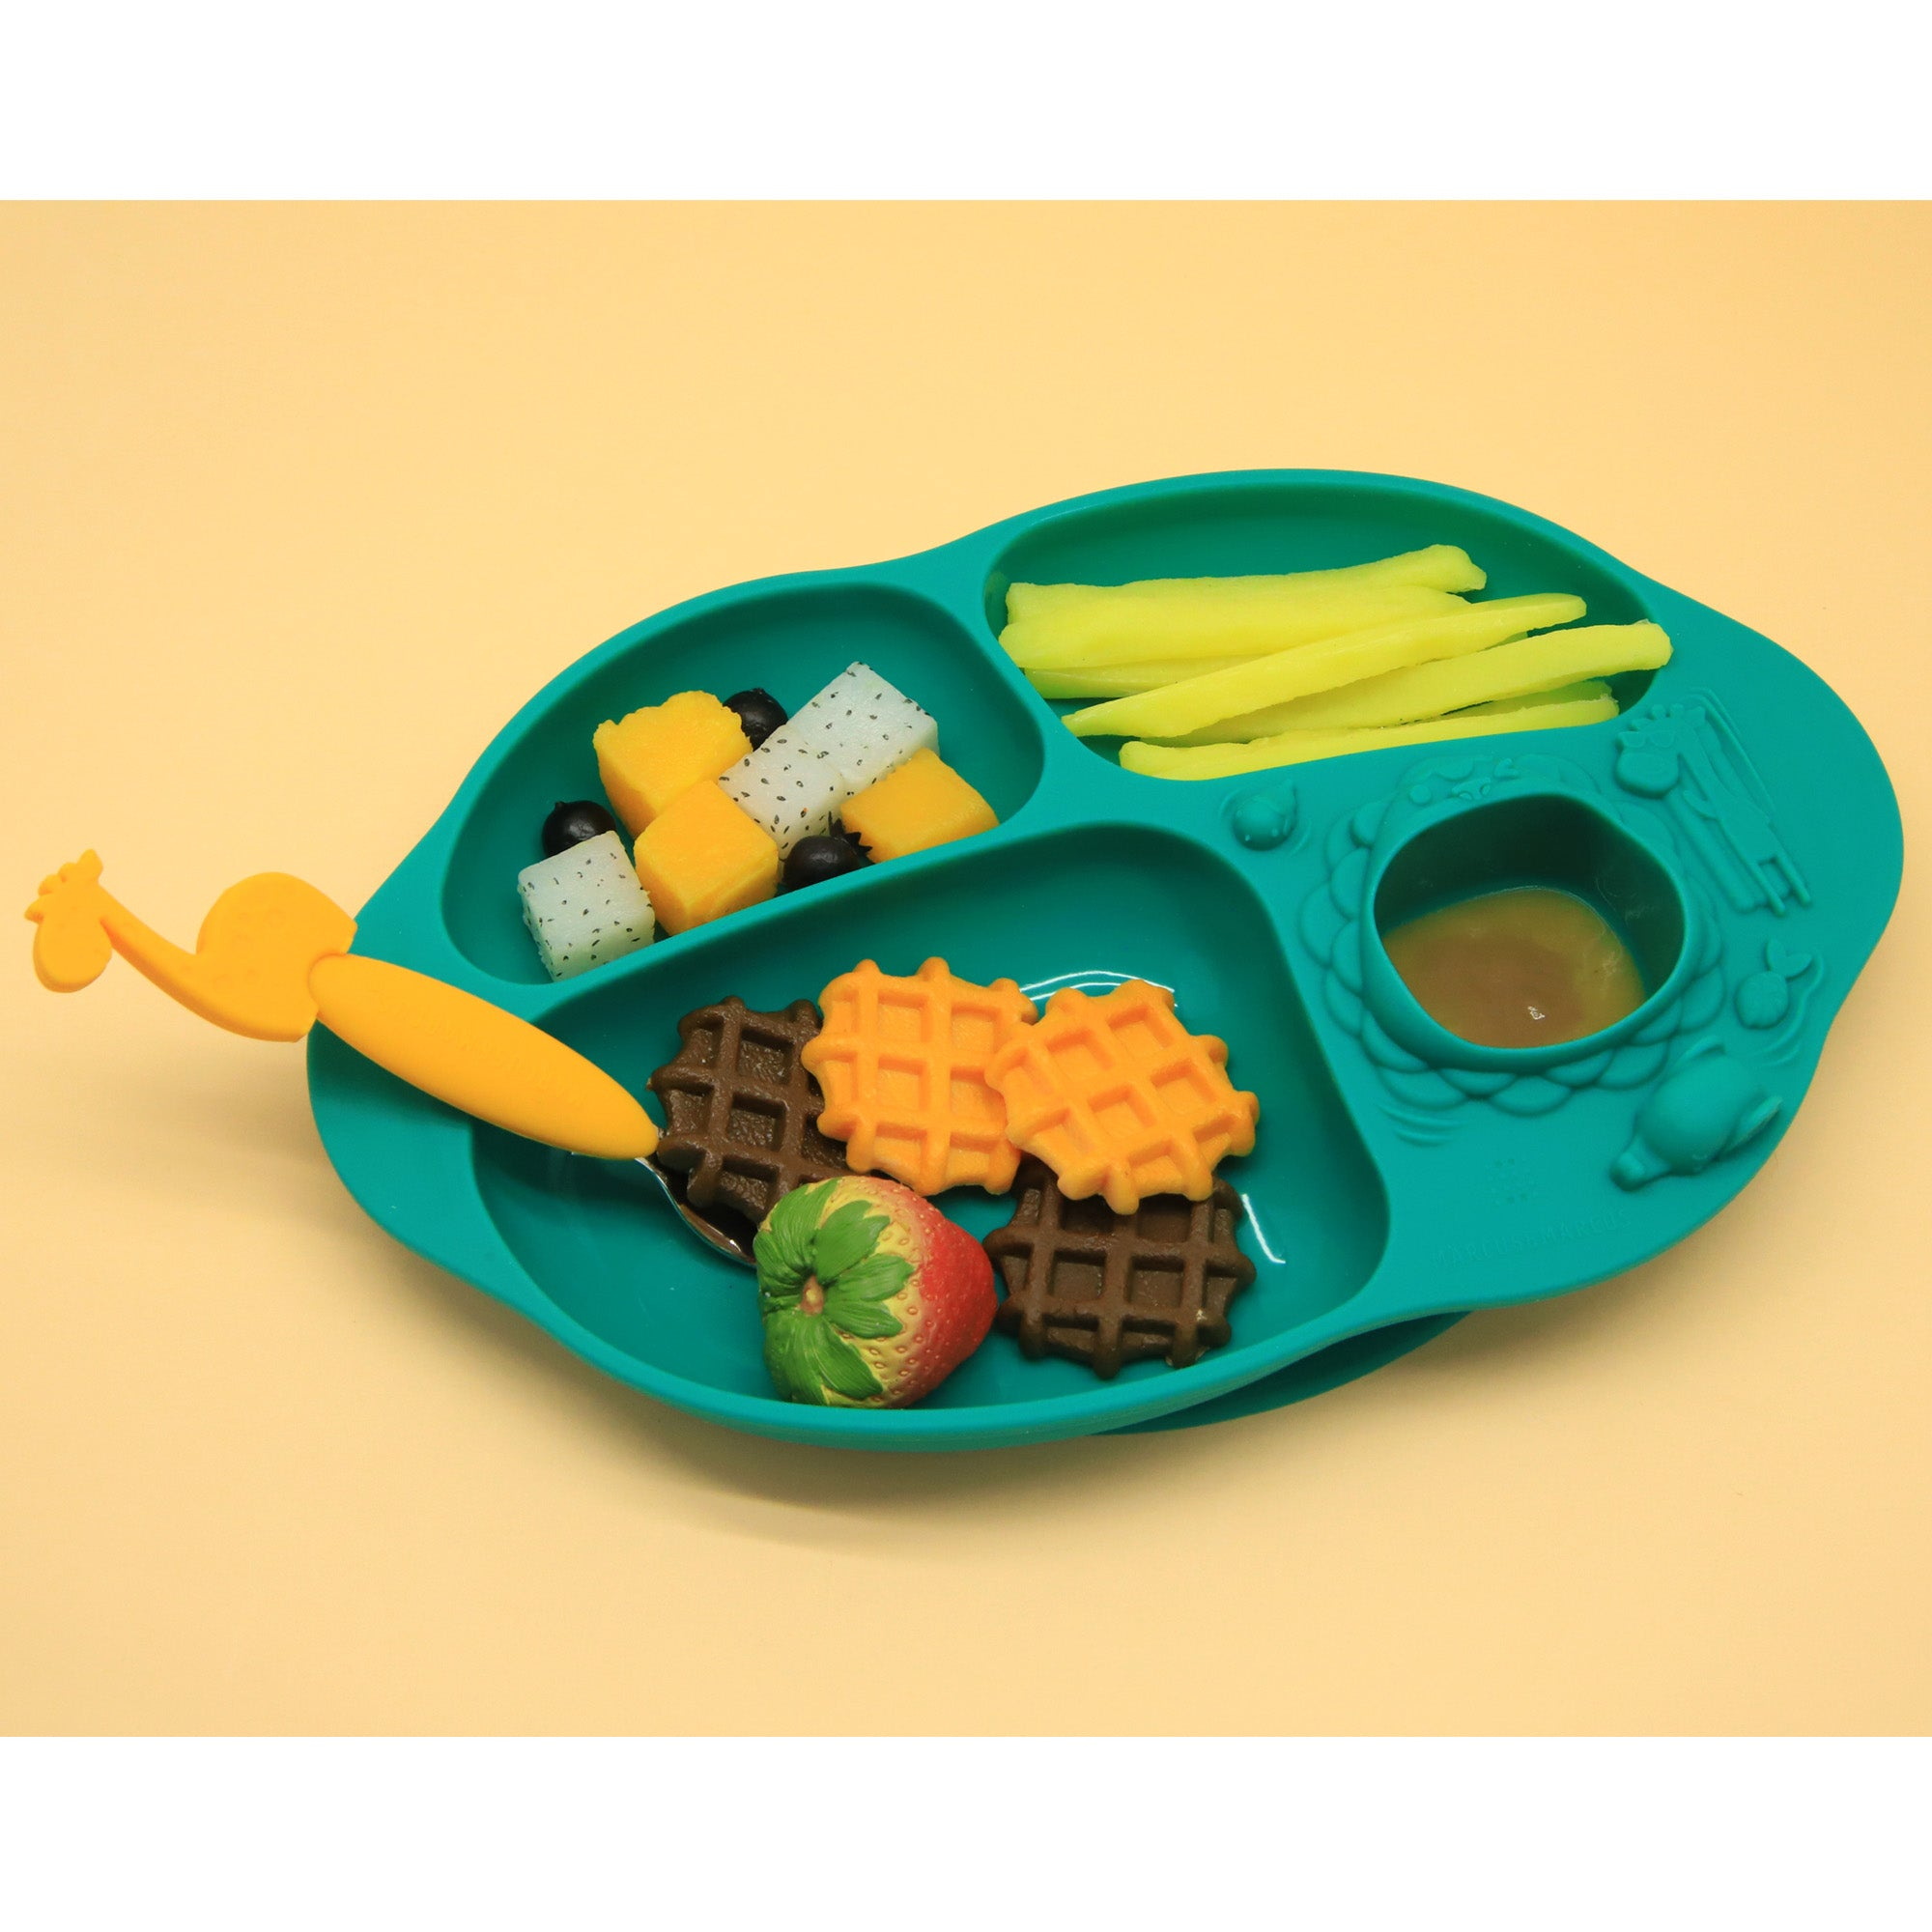 Marcus & Marcus Yummy Dips Suction Divided Plate - Ollie